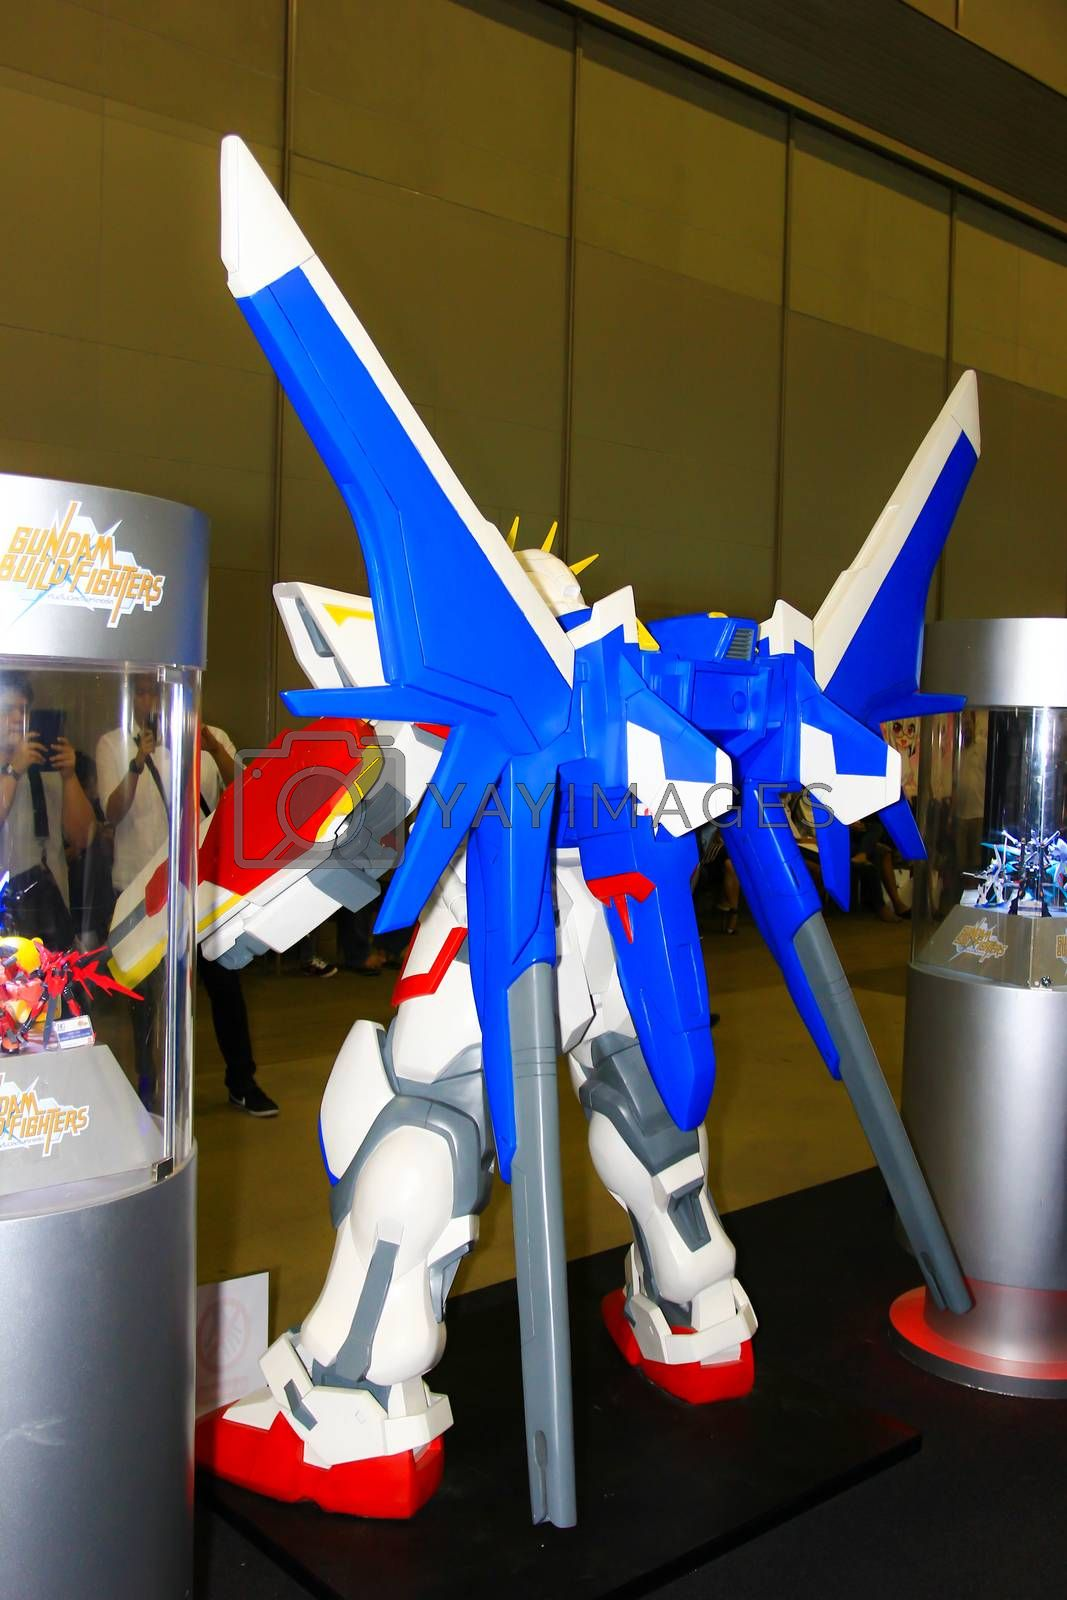 Royalty free image of A model of the character Gundam from the movies and comics 14 by redthirteen